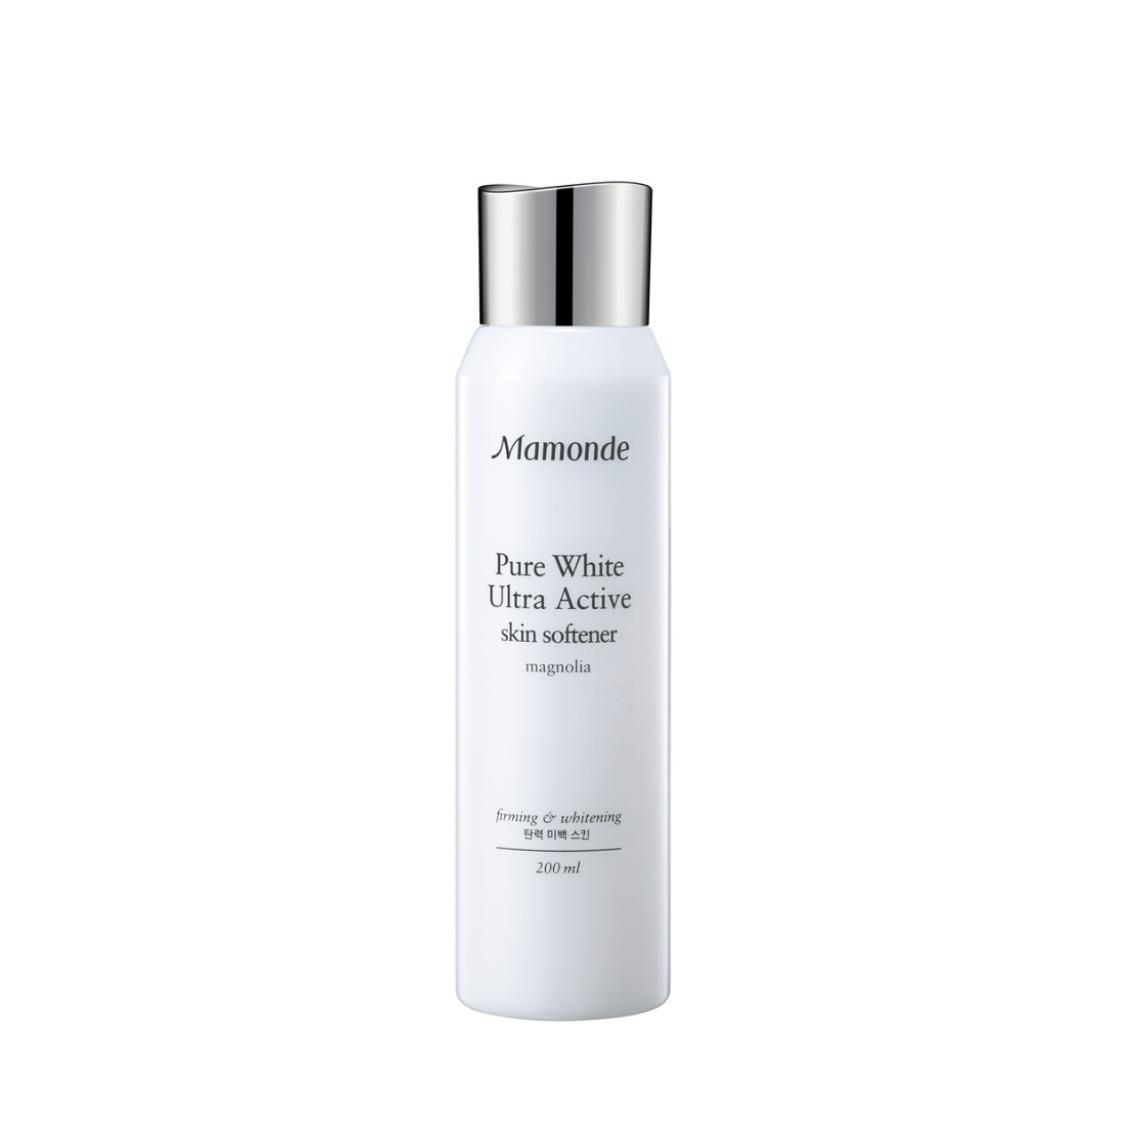 Pure White Ultra Active Skin Softener 200ml